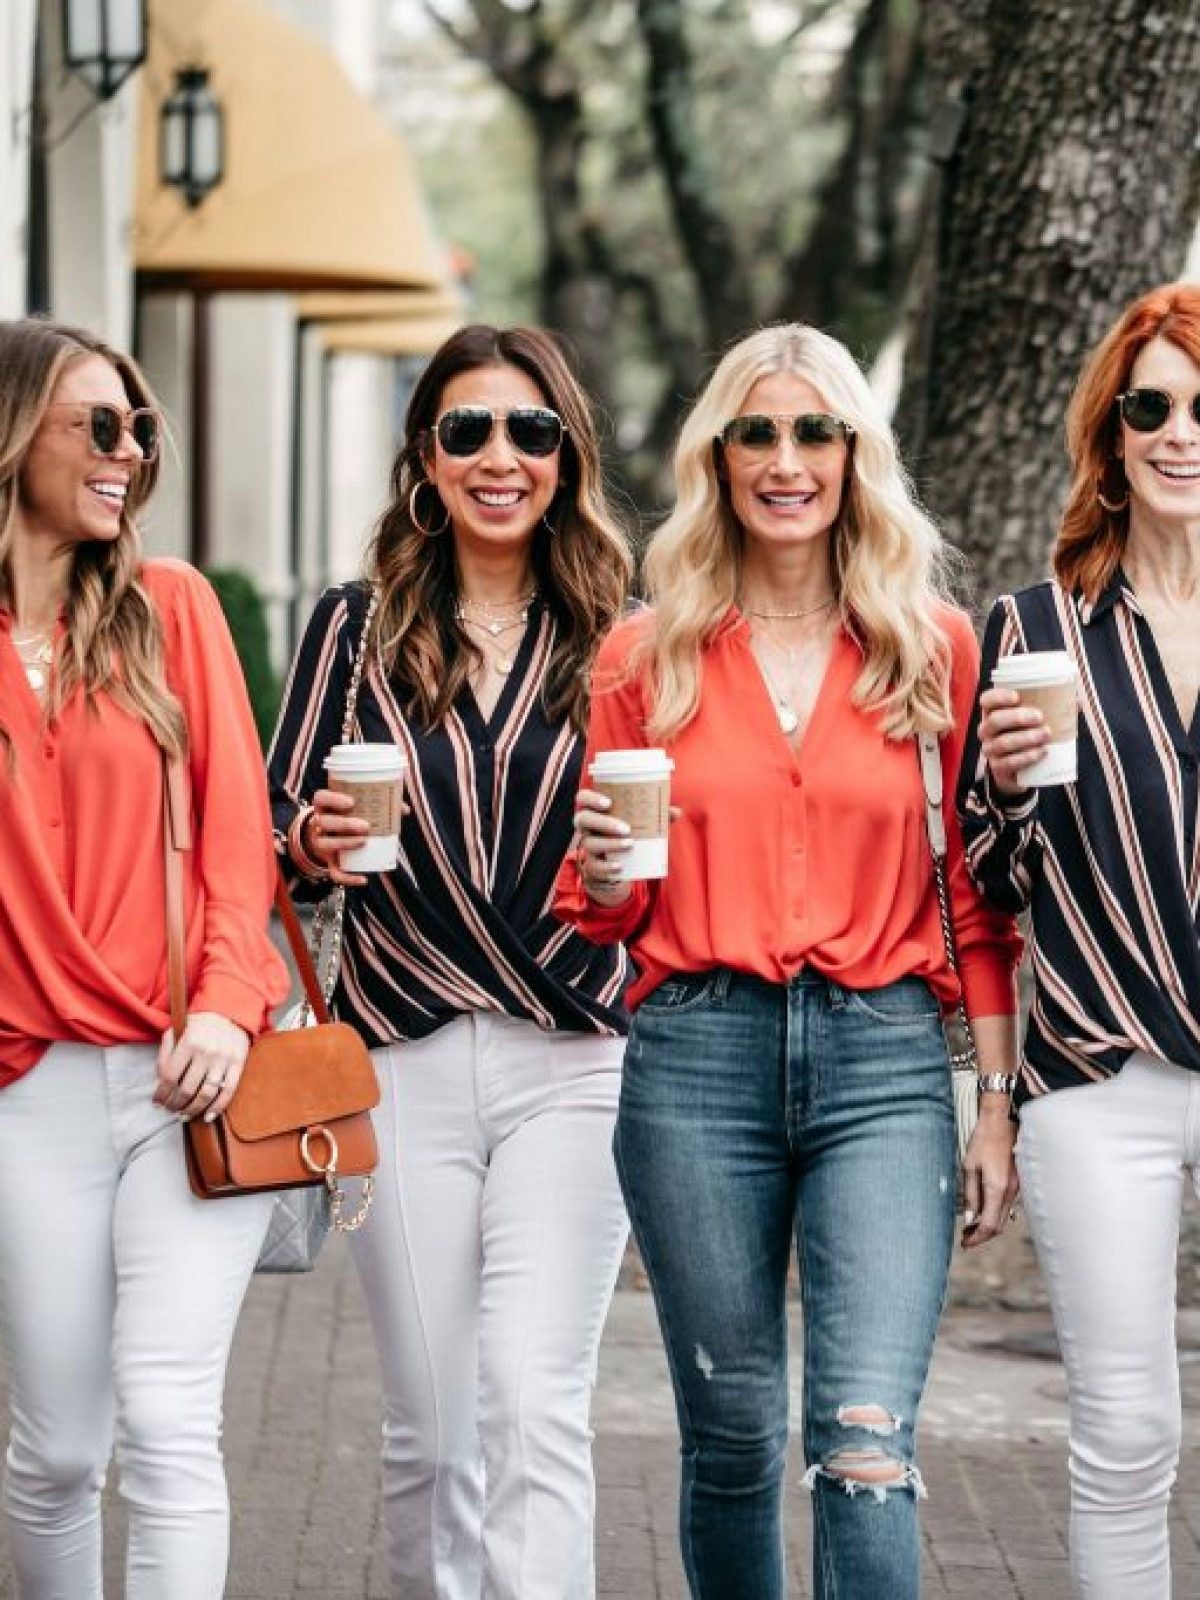 Chic at Every Age Showing Two Trends: Coral and Stripes